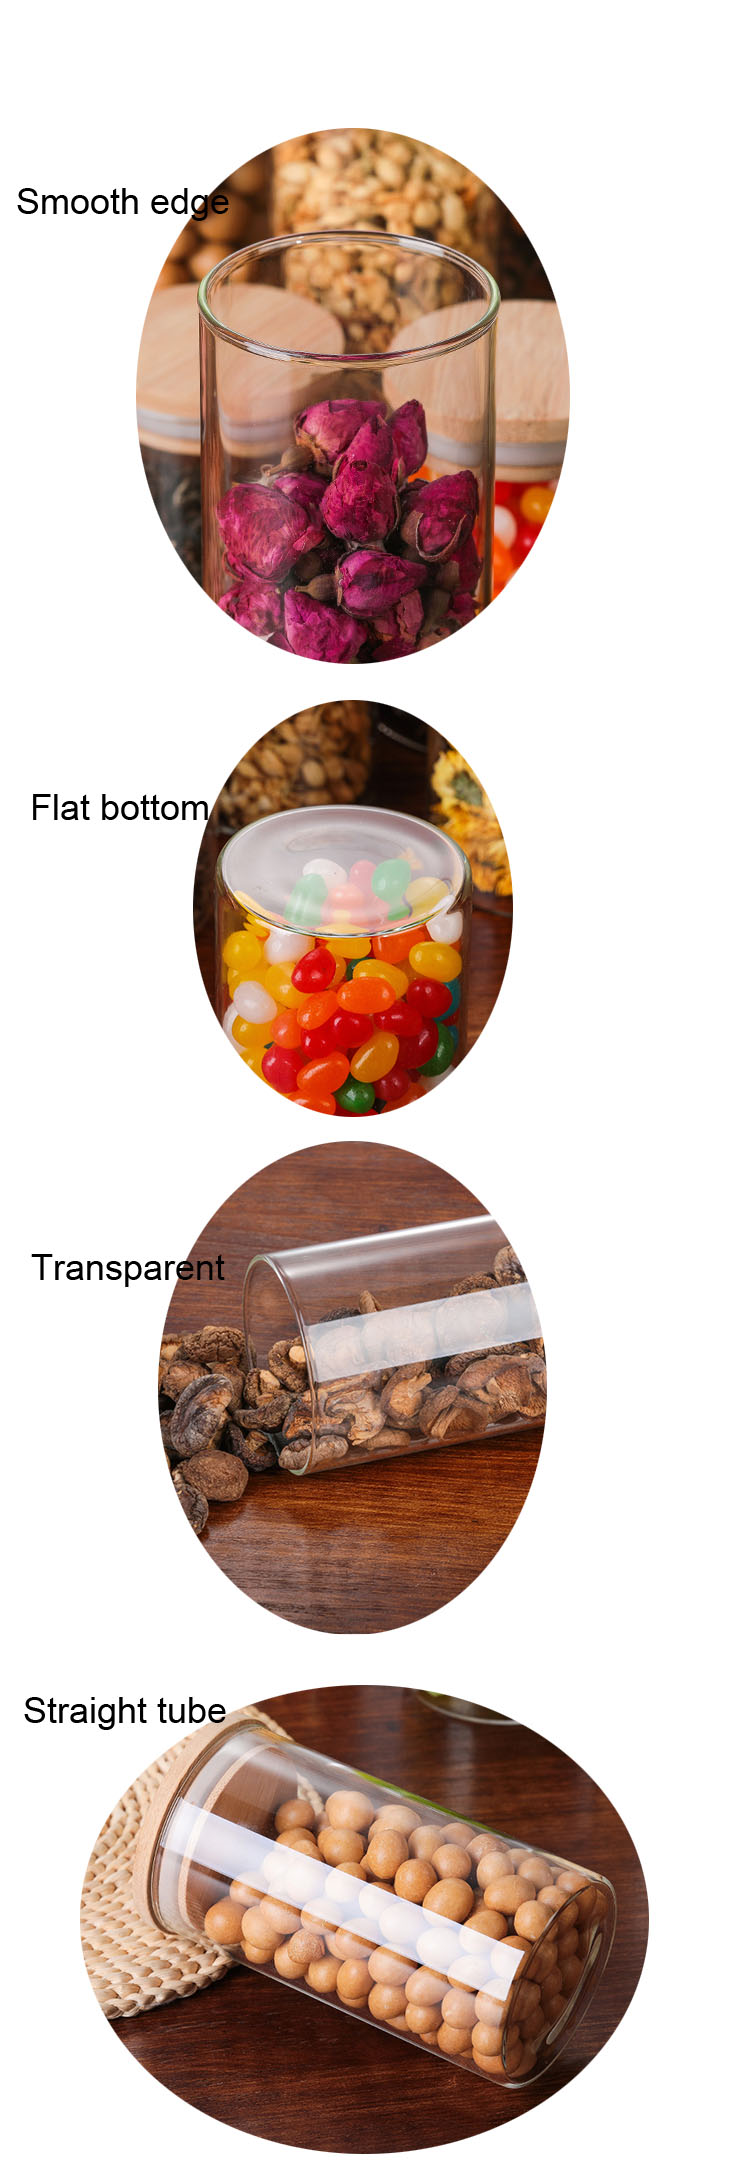 Wholesale and custom made glass jar for packing tea, food, cookier,spice and so on (3)